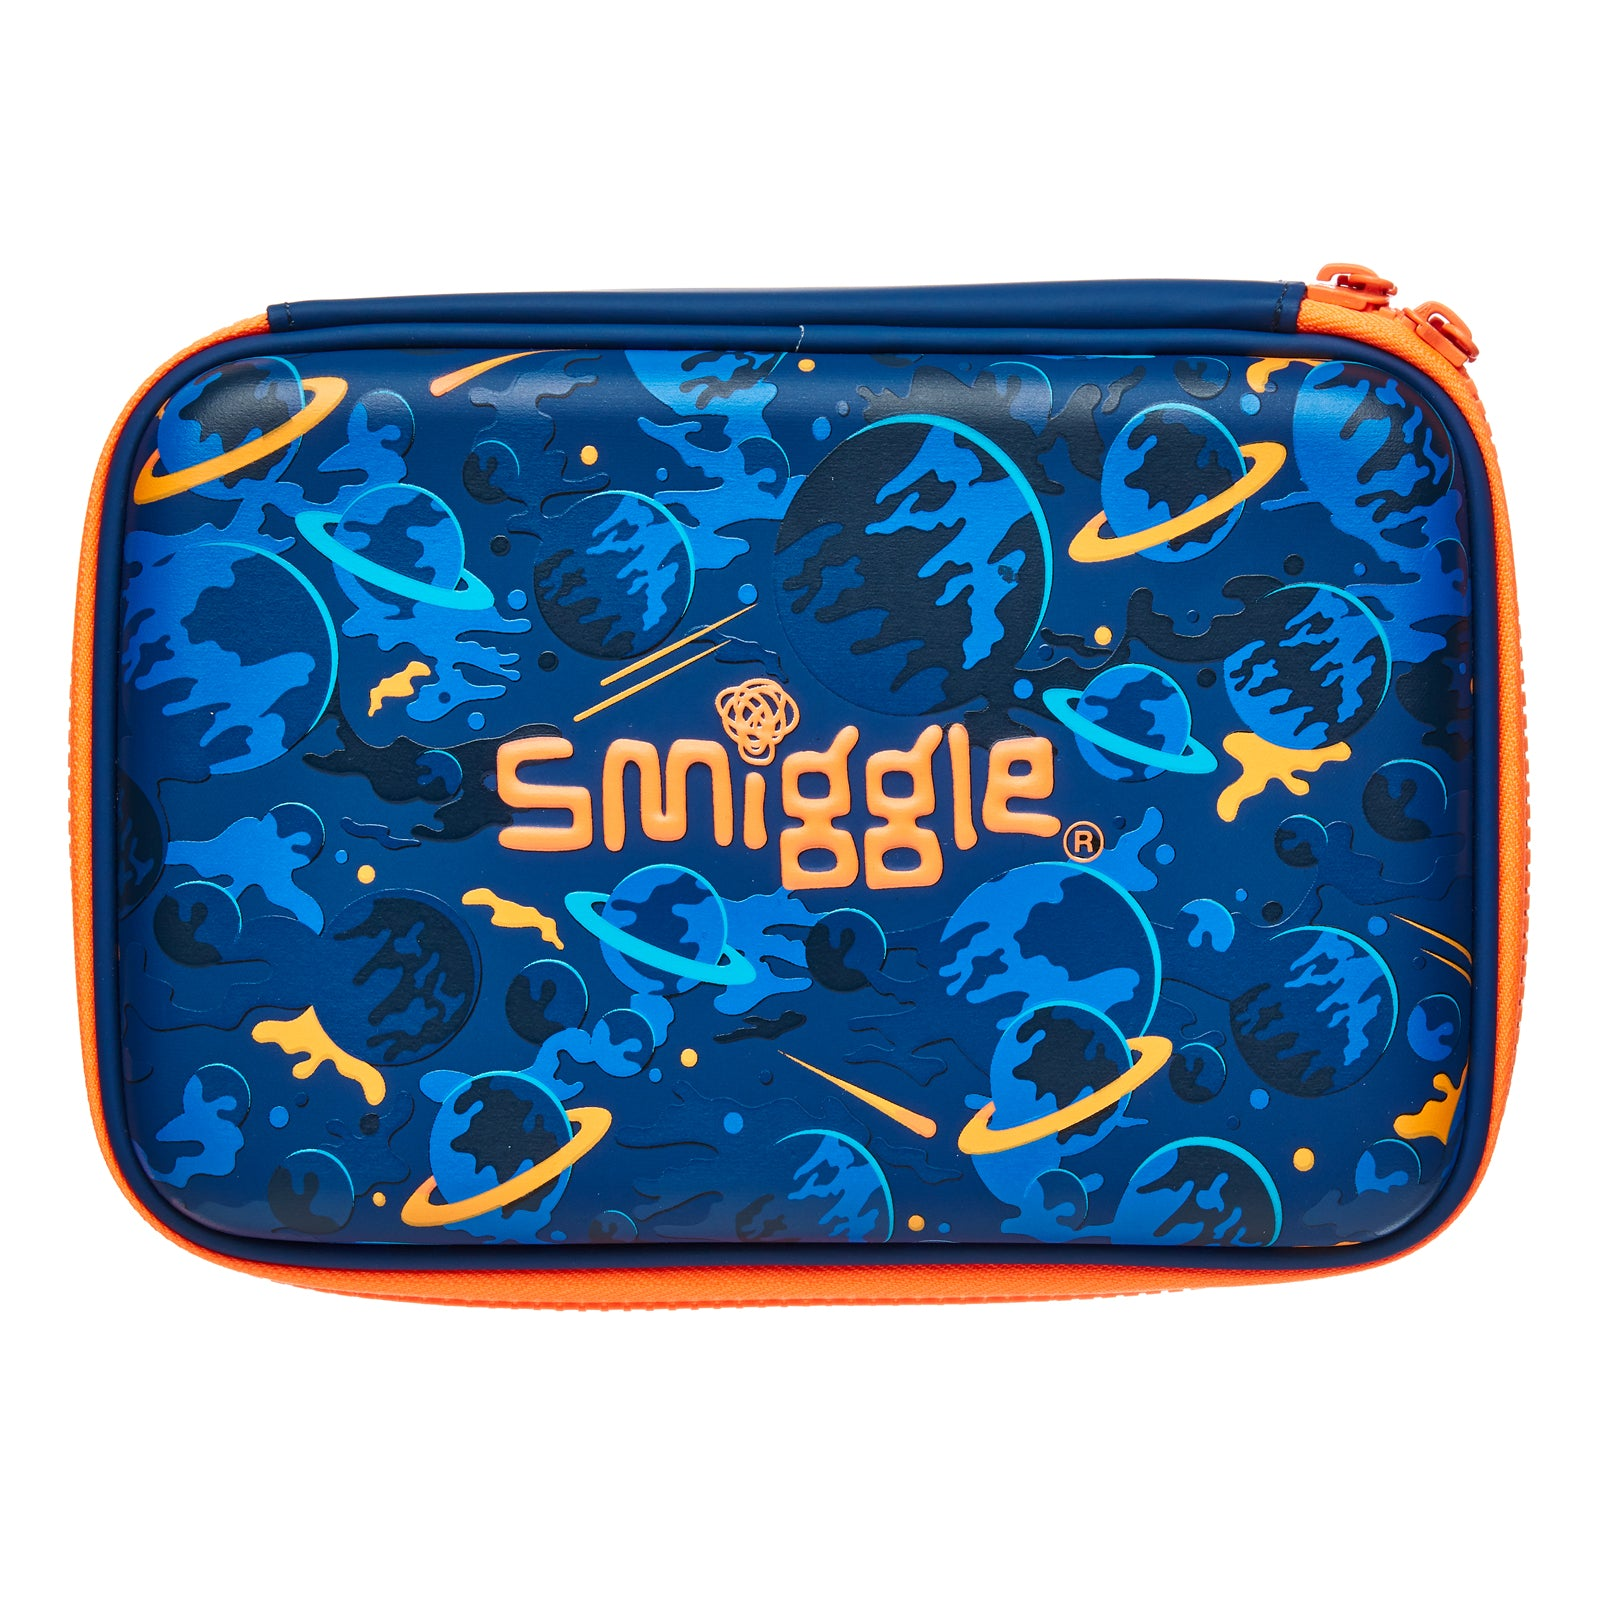 SMIGGLE - HIPPY SMALL HARDTOP PENCIL CASE NAVY - MyVaniteeCase